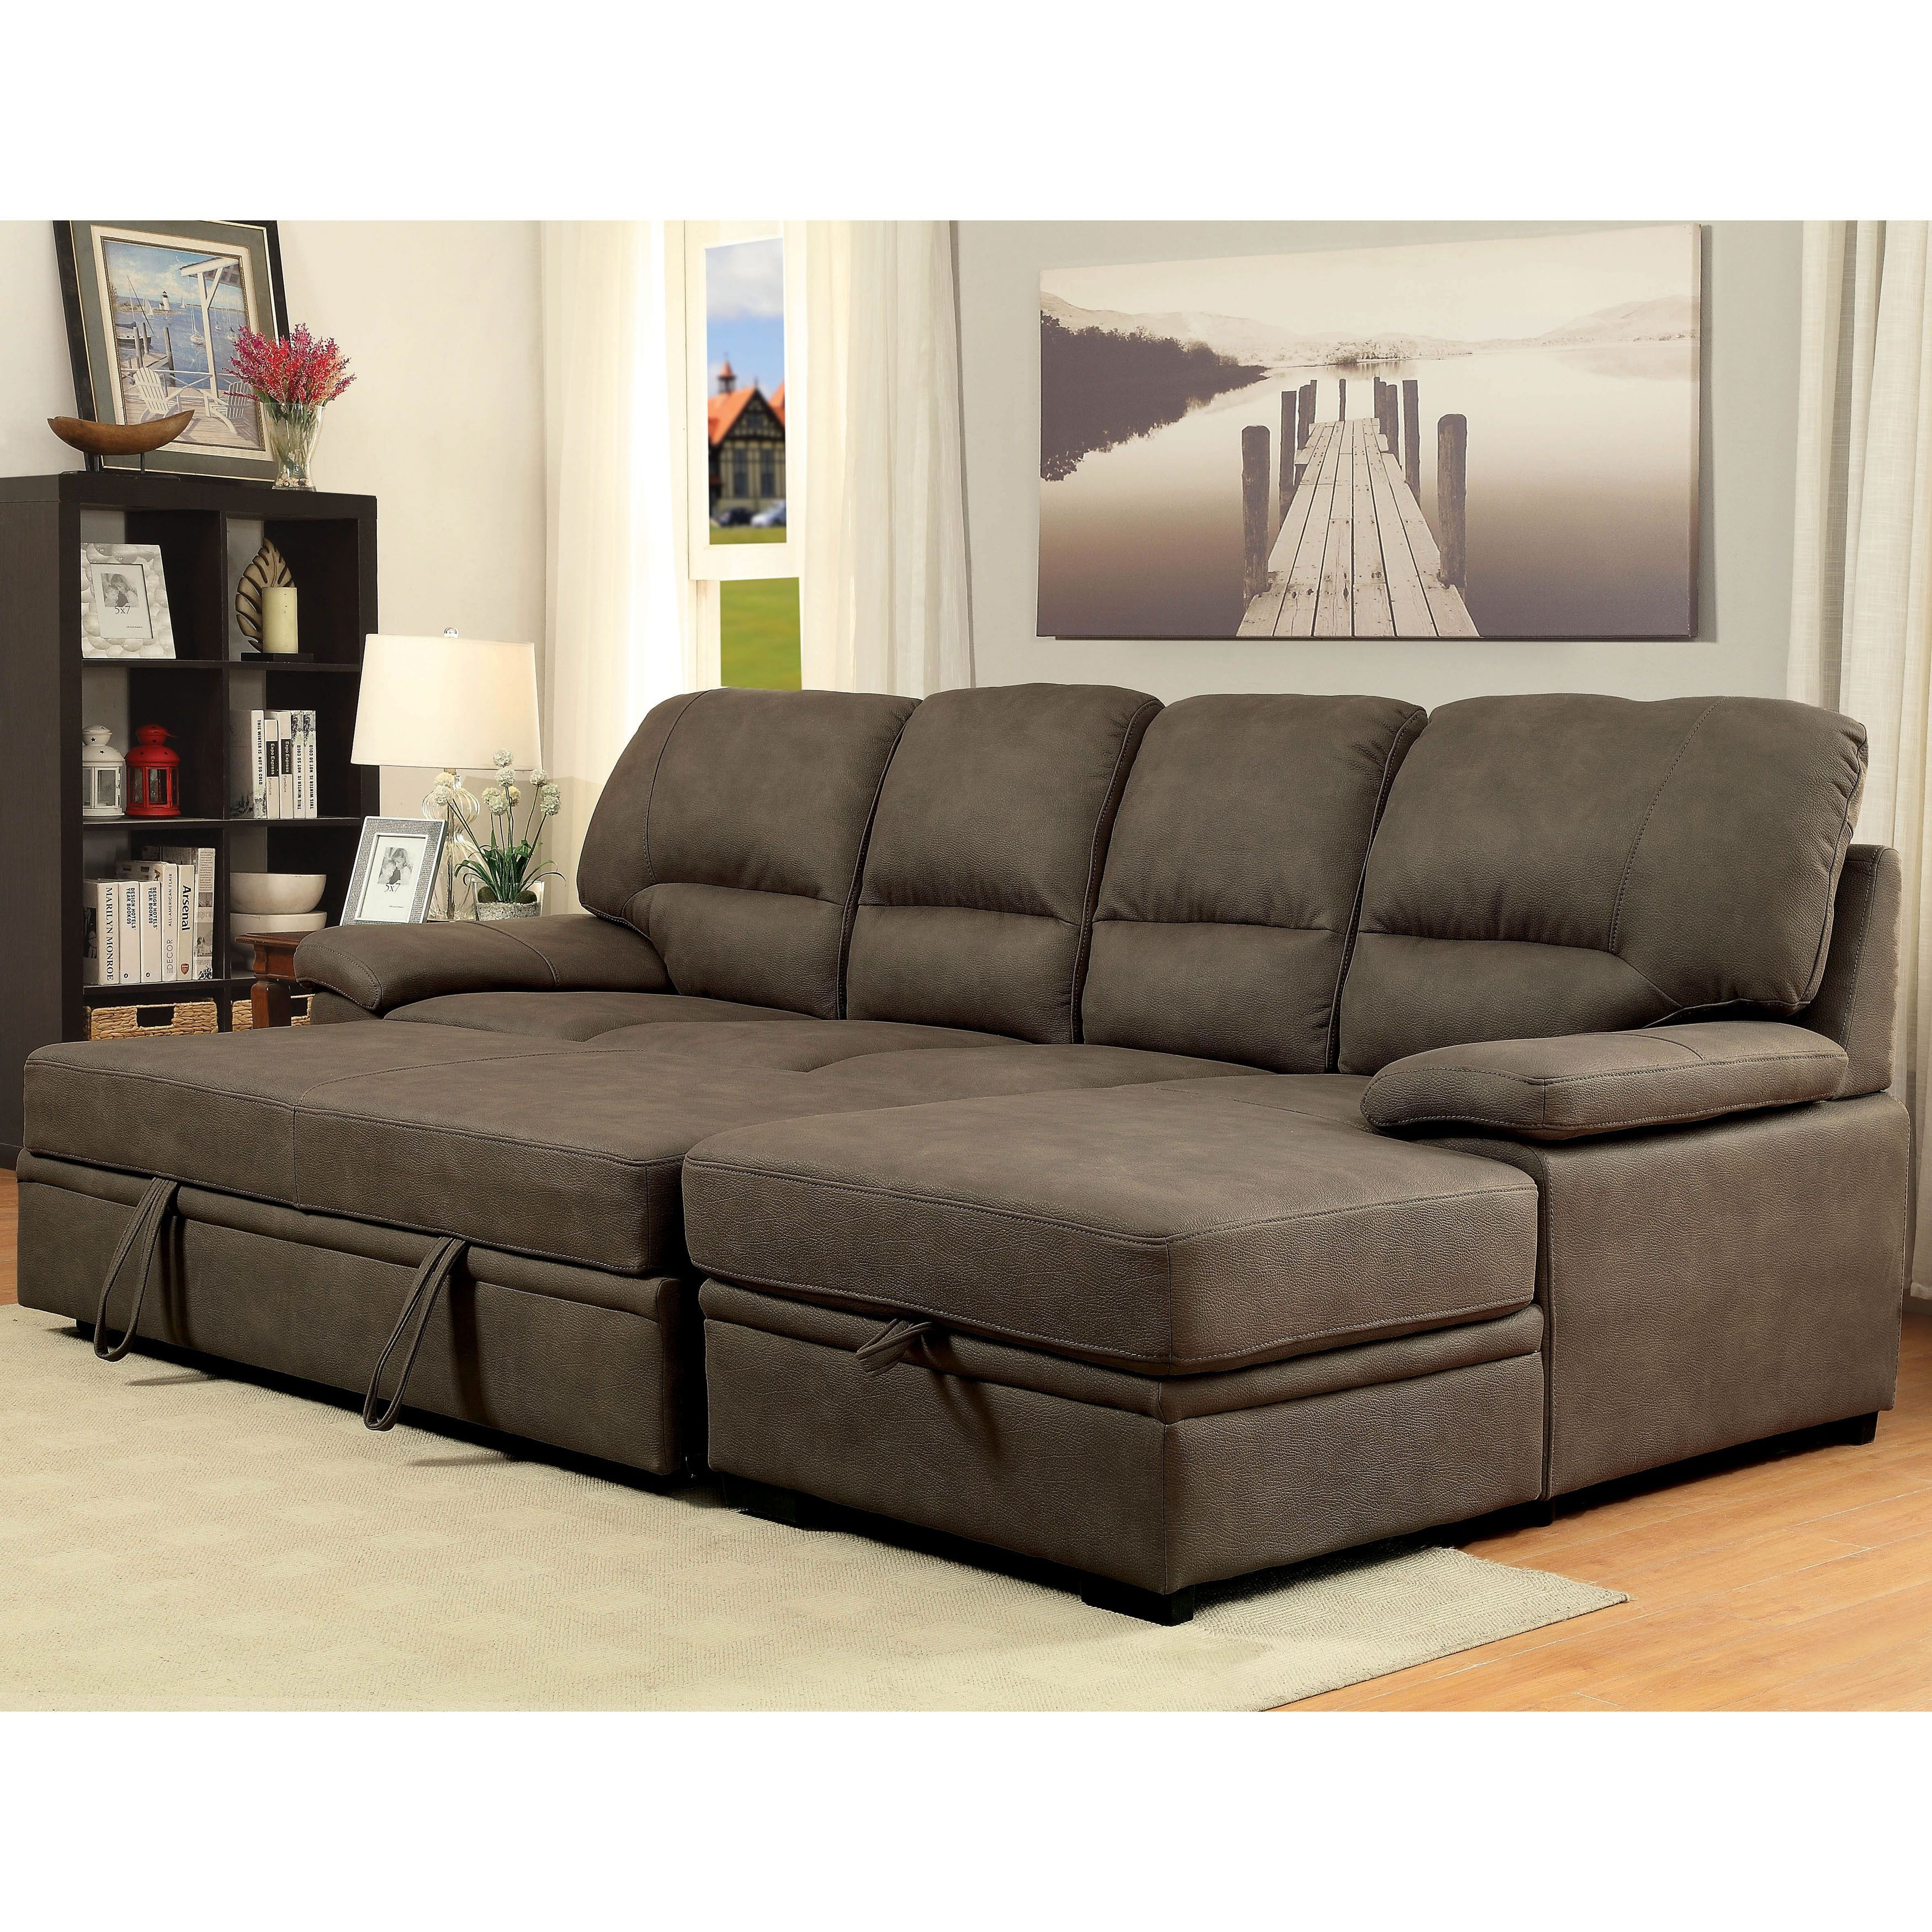 Sectional Pull Out Couch Furniture Of America Delton Contemporary Faux Nubuck Sleeper